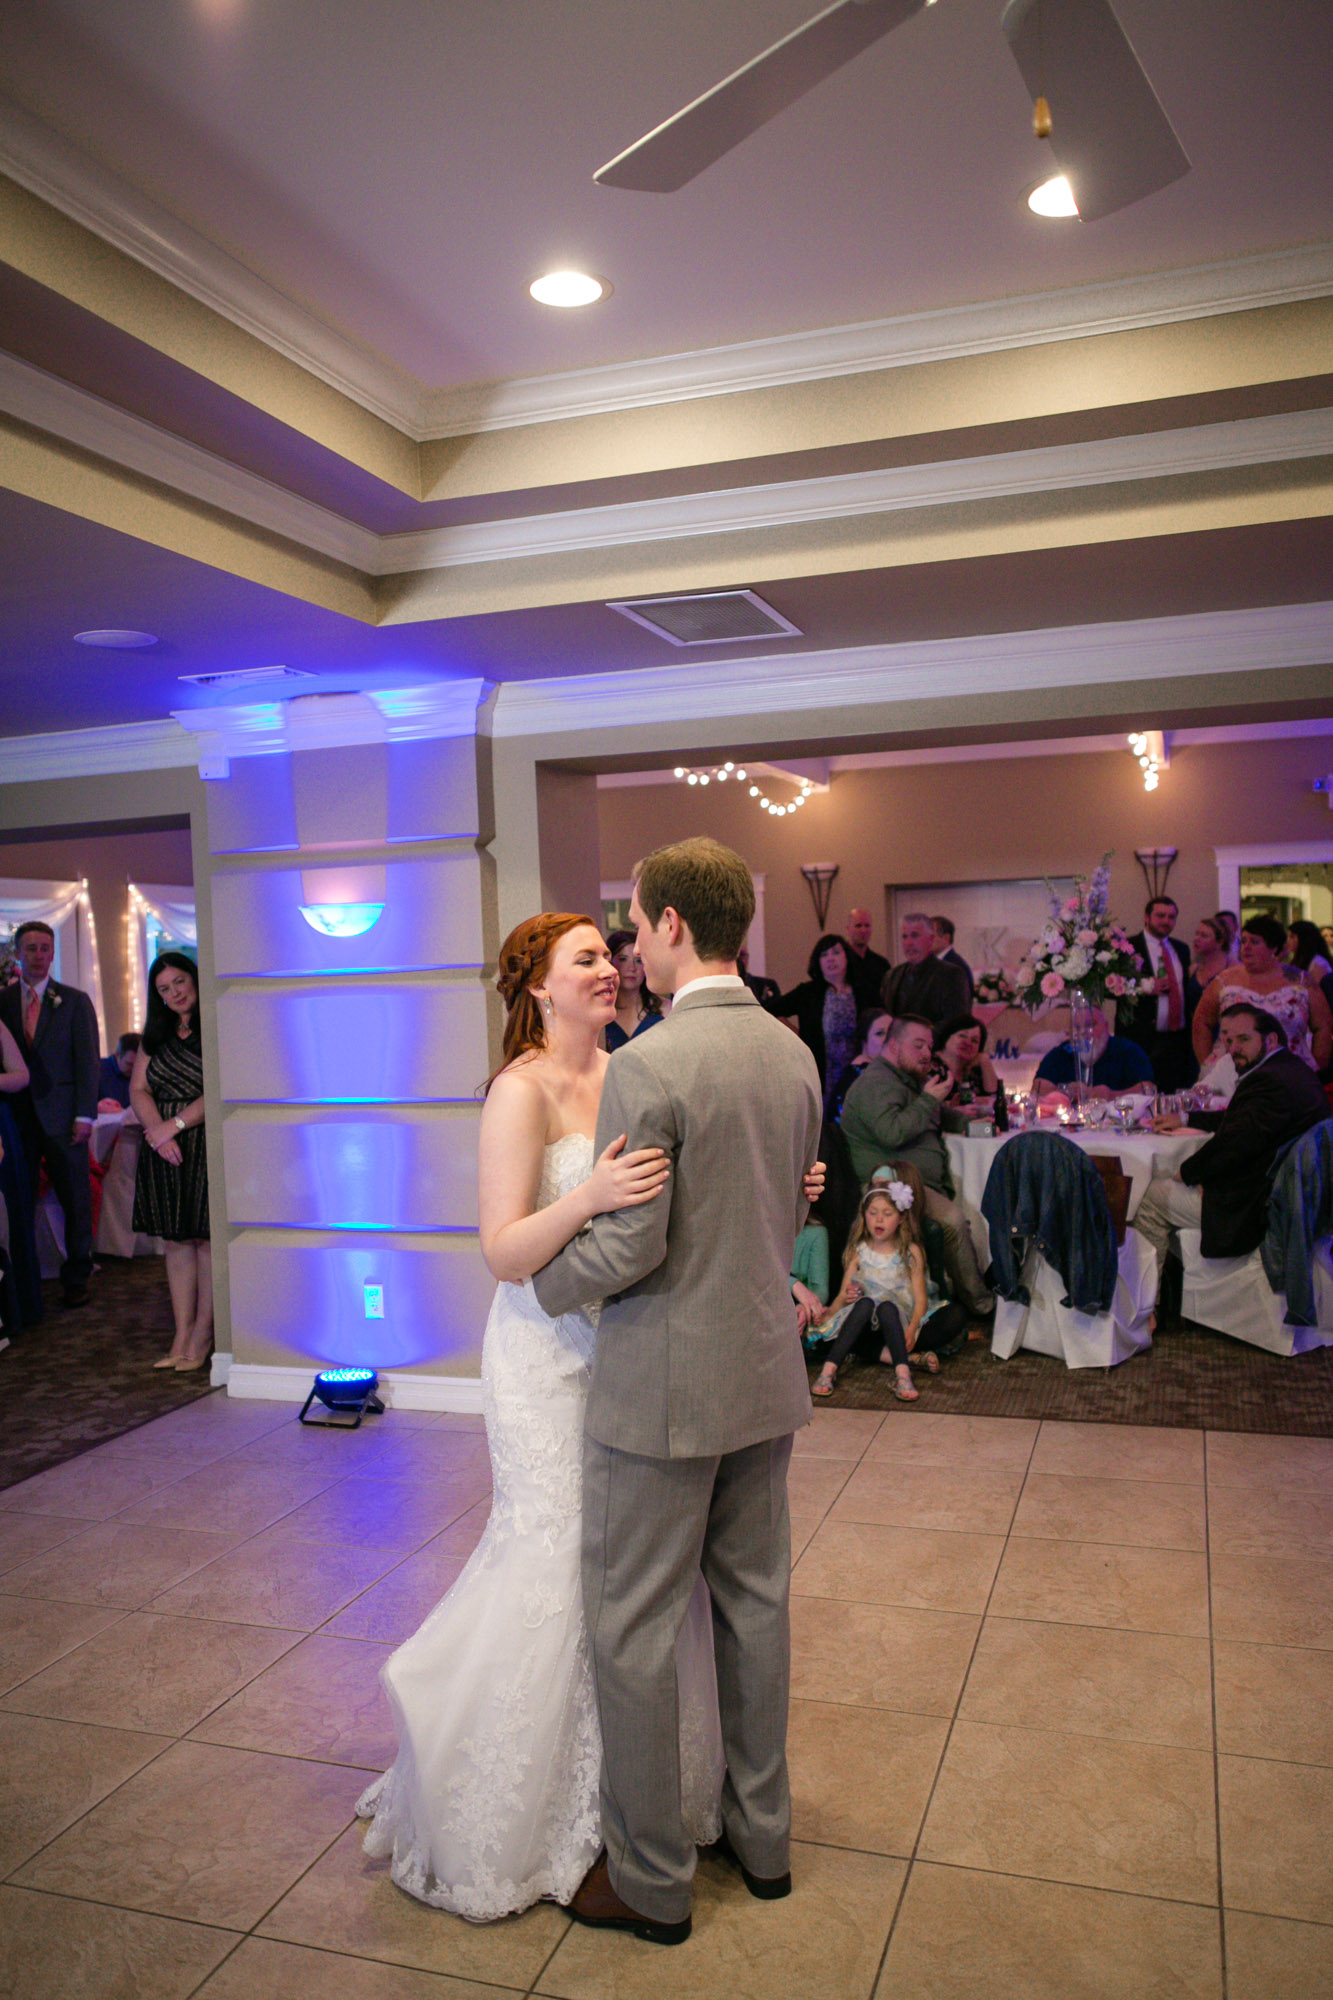 highland-meadows-sylvania-wedding-photos-98.jpg